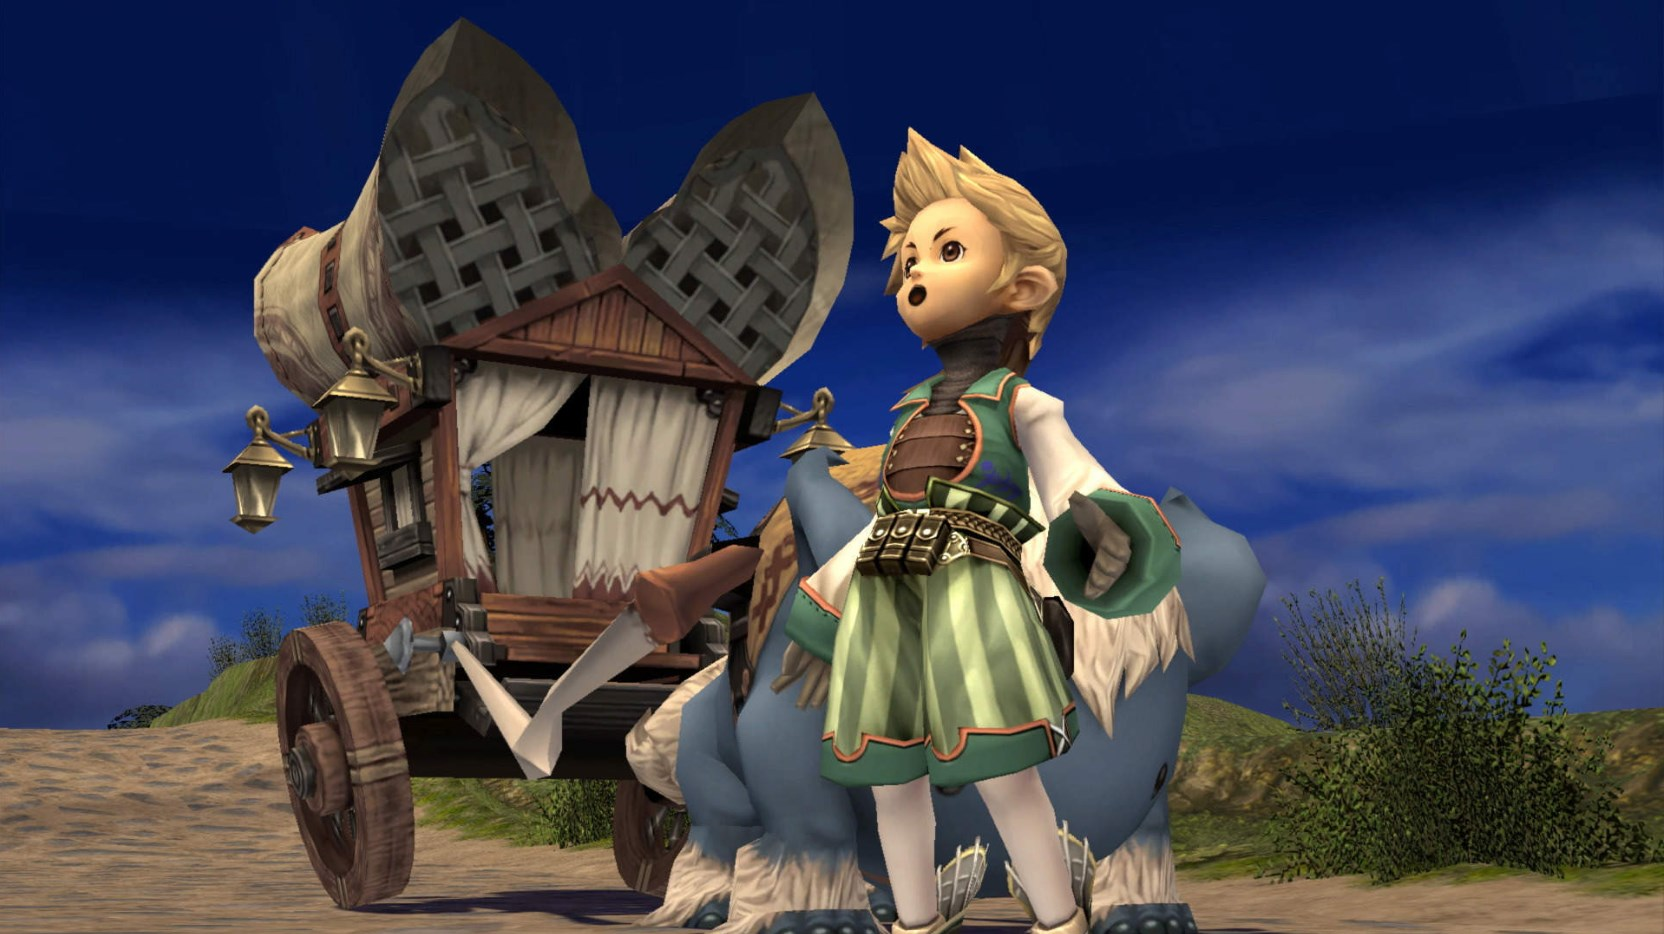 Final Fantasy Crystal Chronicles Remastered Edition launching Jan. 23